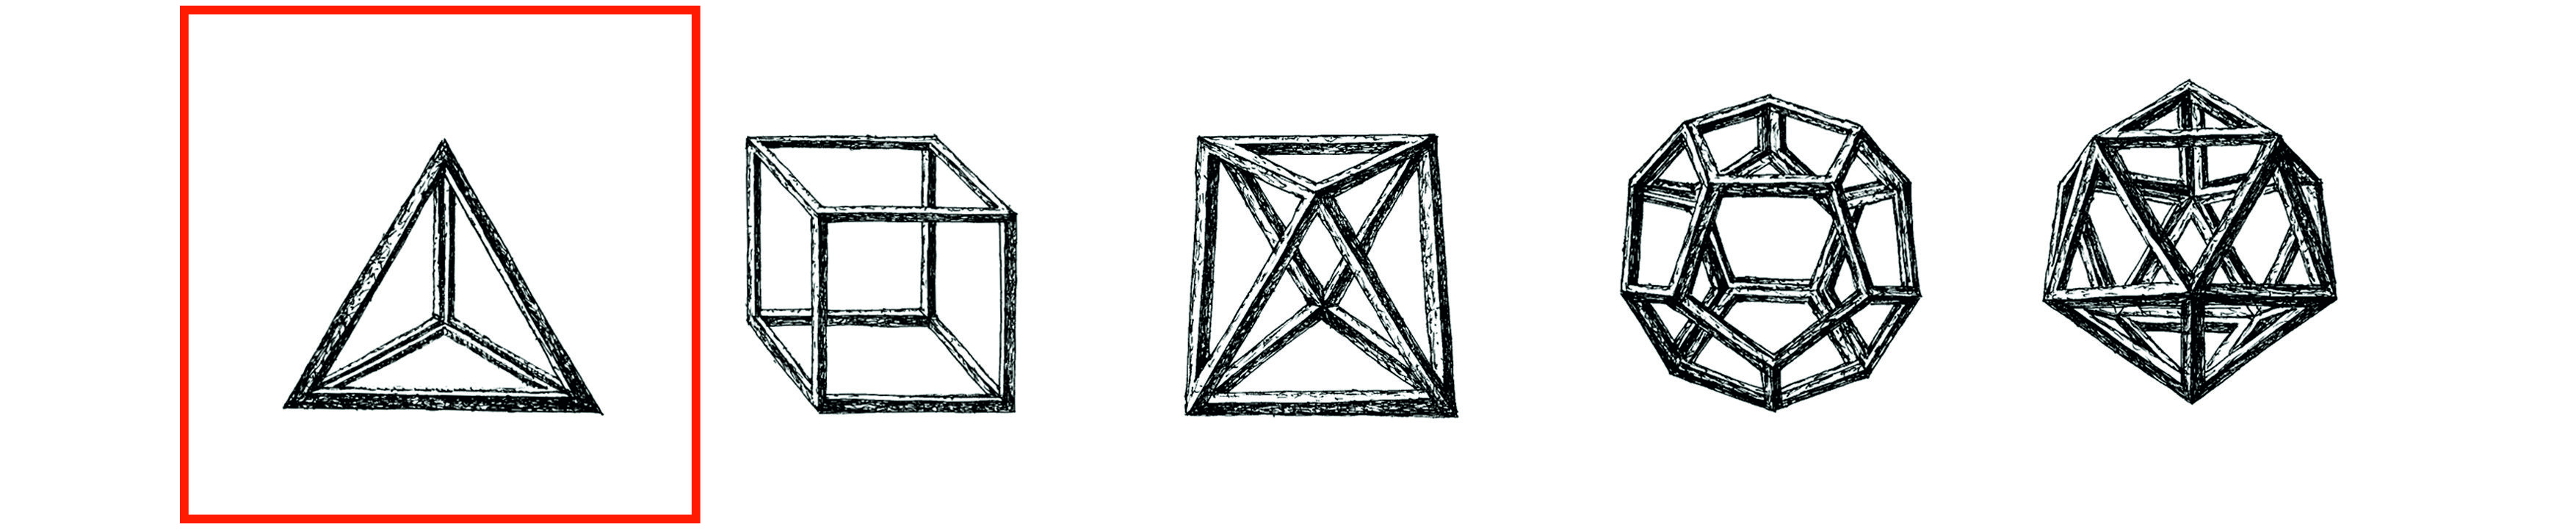 Timaeus fire pit metal products three of these pieces are the basic structure supports on the horizontal plane each of this support pieces has a symbol that represents one of the three biocorpaavc Choice Image